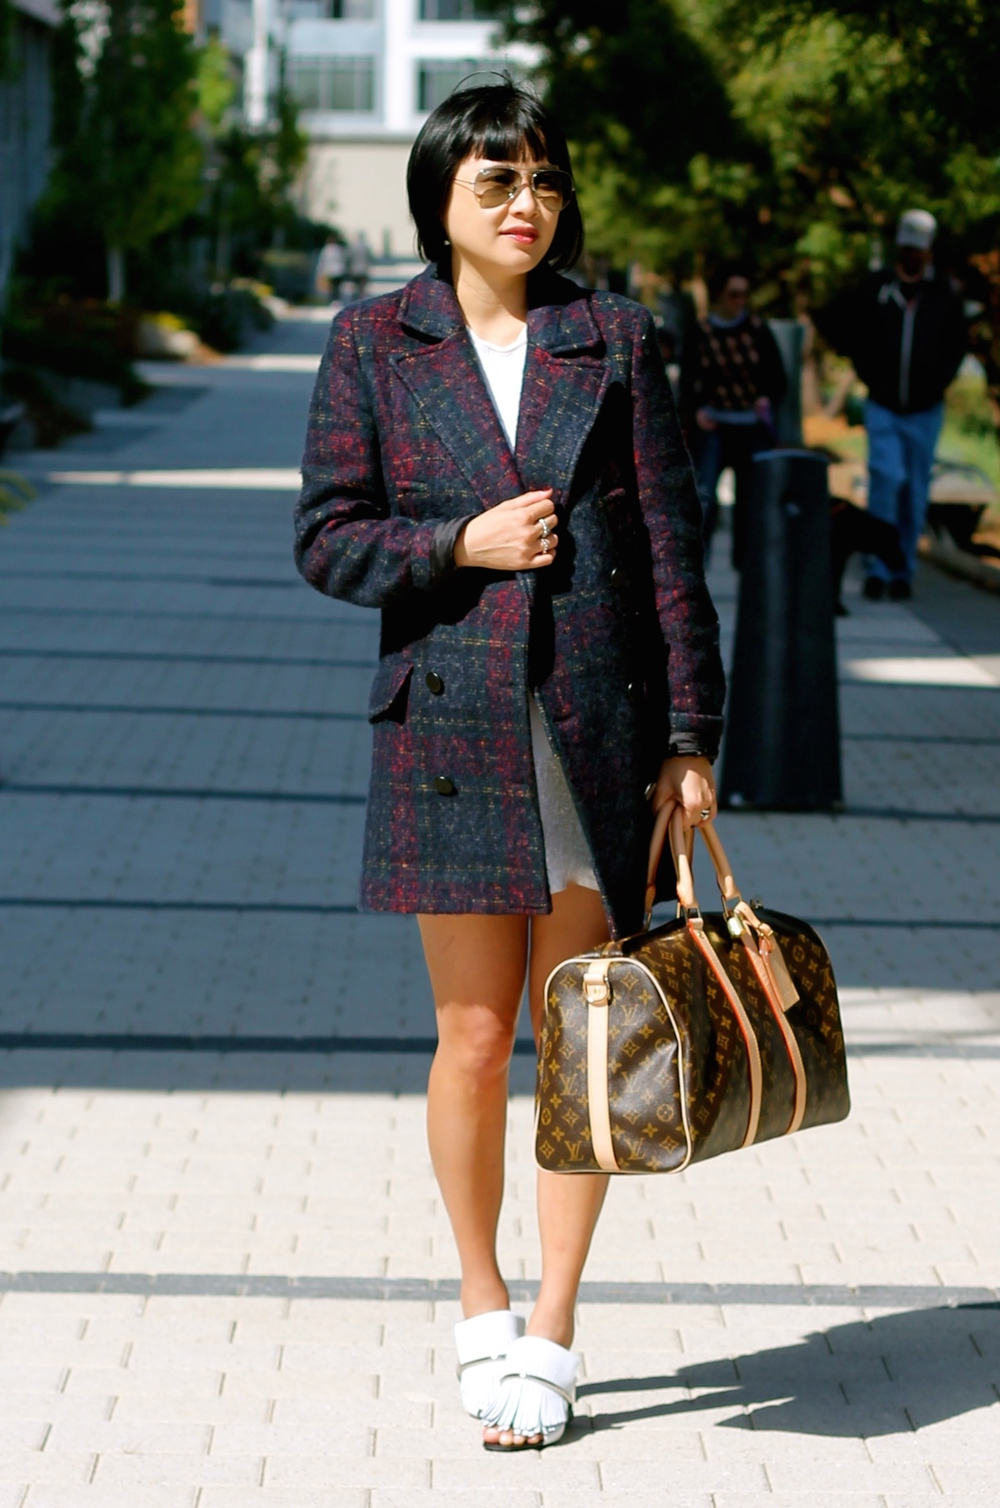 Zara coat, Aritzia dress, Louis Vuitton bag, Proenza Schouler shoes, Ray-Ban sunglasses